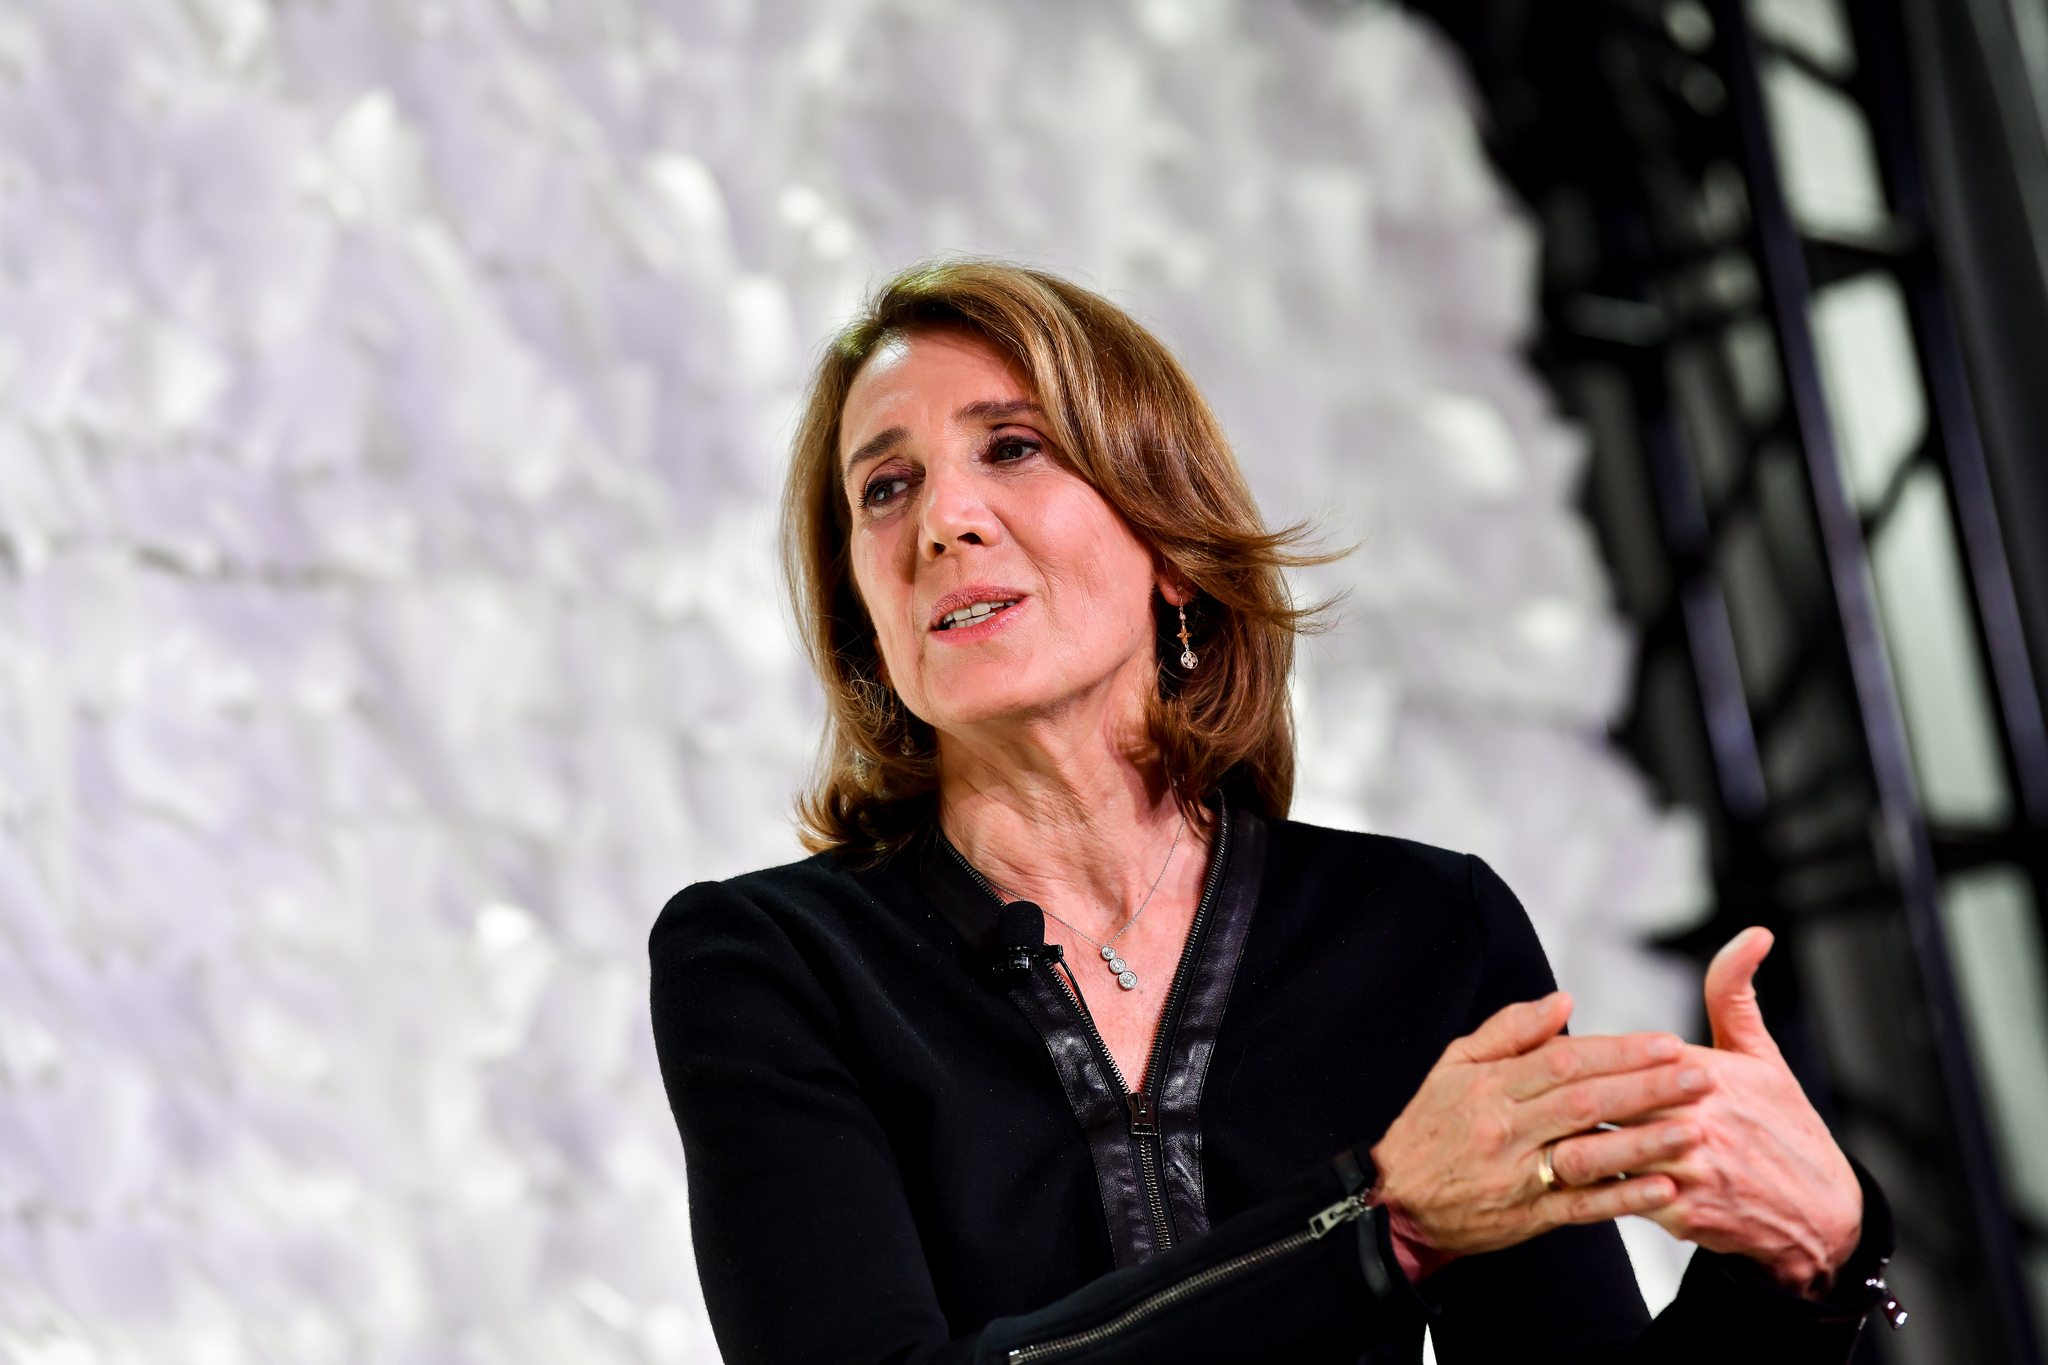 Alphabet and Google CFO Ruth Porat, speaking to Pattie Sellers, at the 2018 Fortune Most Powerful Women Summit in Laguna Niguel, Calif.